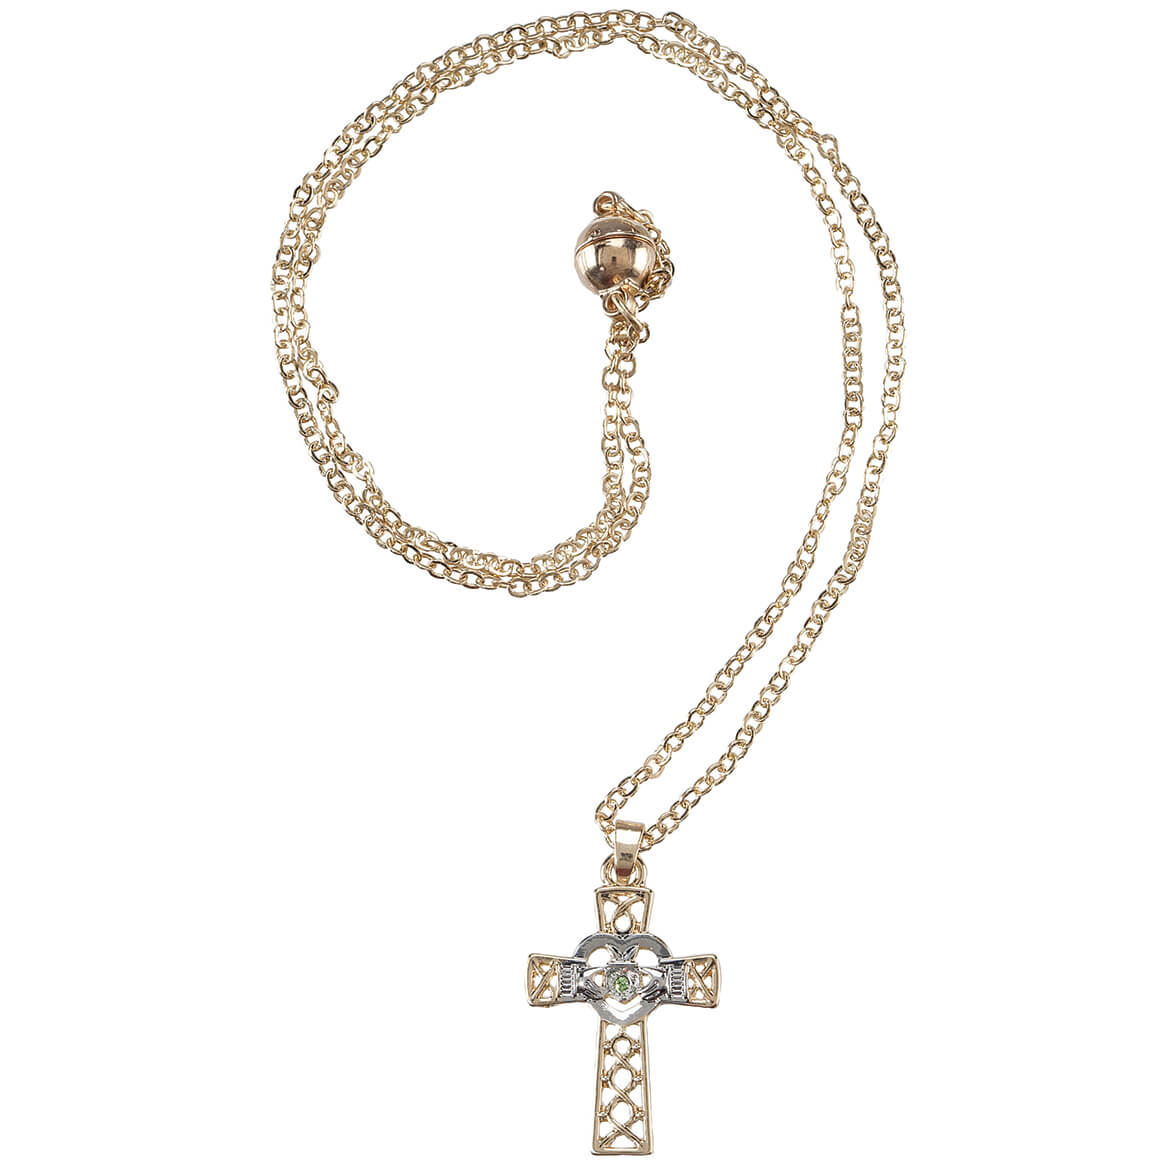 Claddagh Celtic Cross Necklace with Magnetic Closure-369078